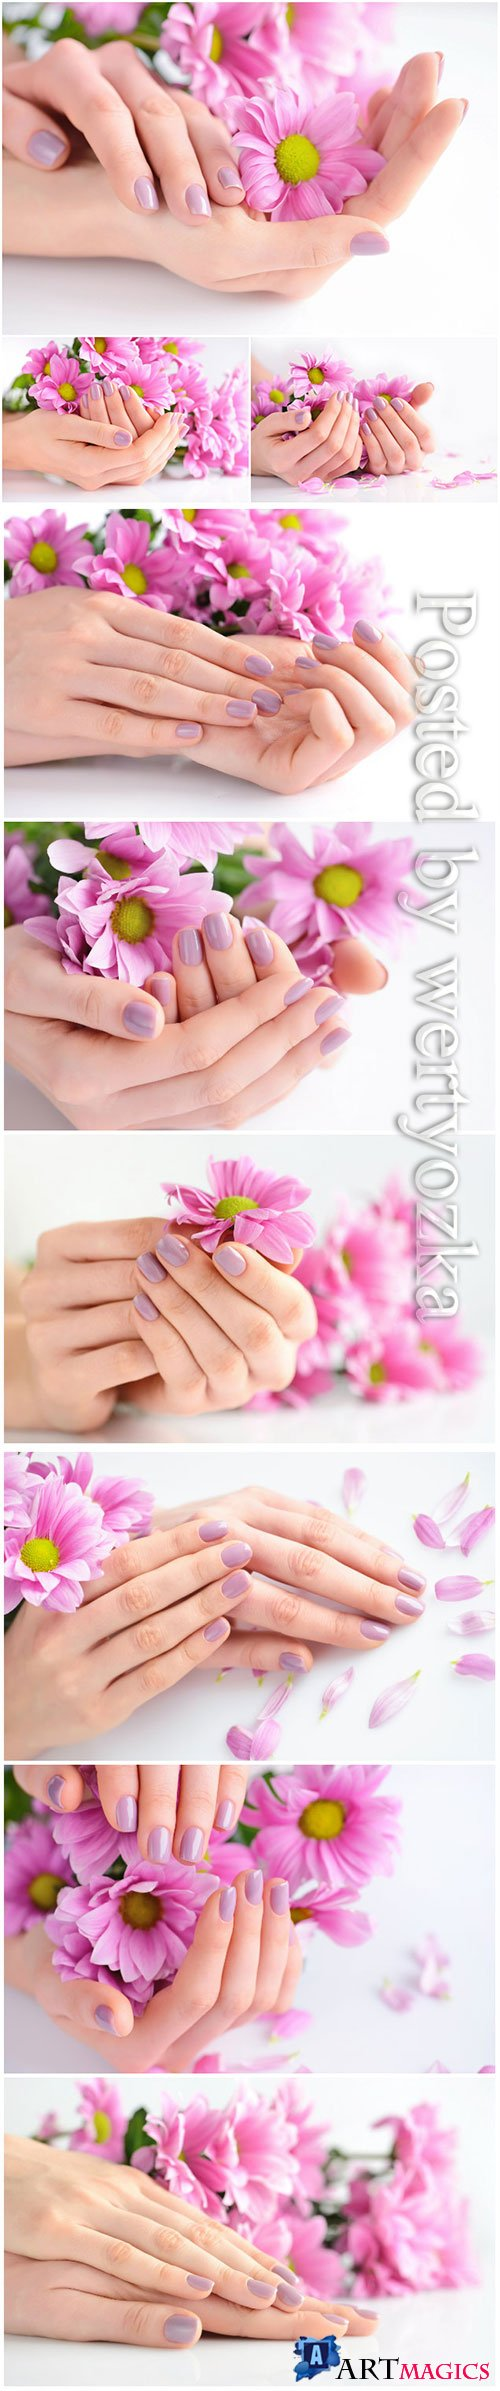 Beautiful manicure, hands with flowers